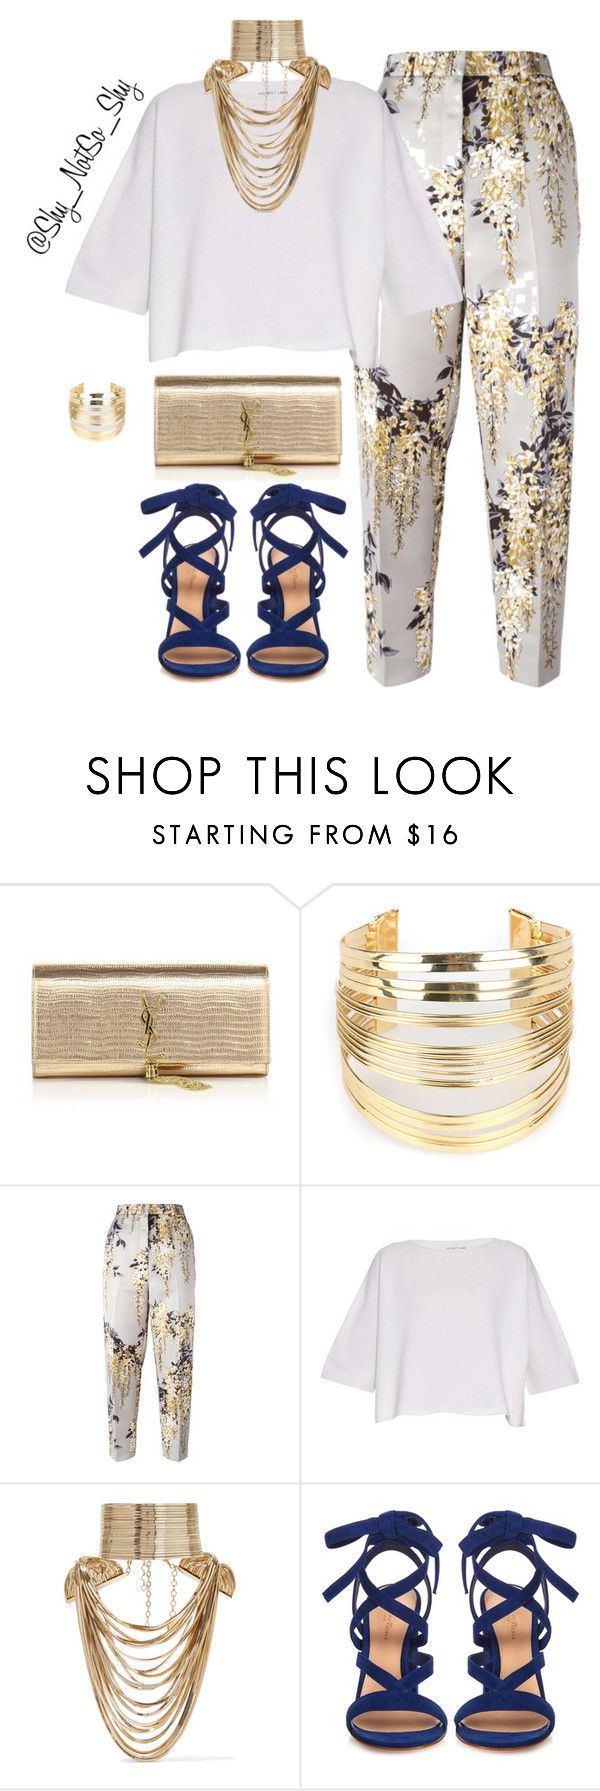 Spring/Summer by addoz on Polyvore featuring Helmut Lang, Rochas, Gianvito Rossi, Yves Saint Laurent, Rosantica, WithChic, women's clothing, women's fashion, women and female